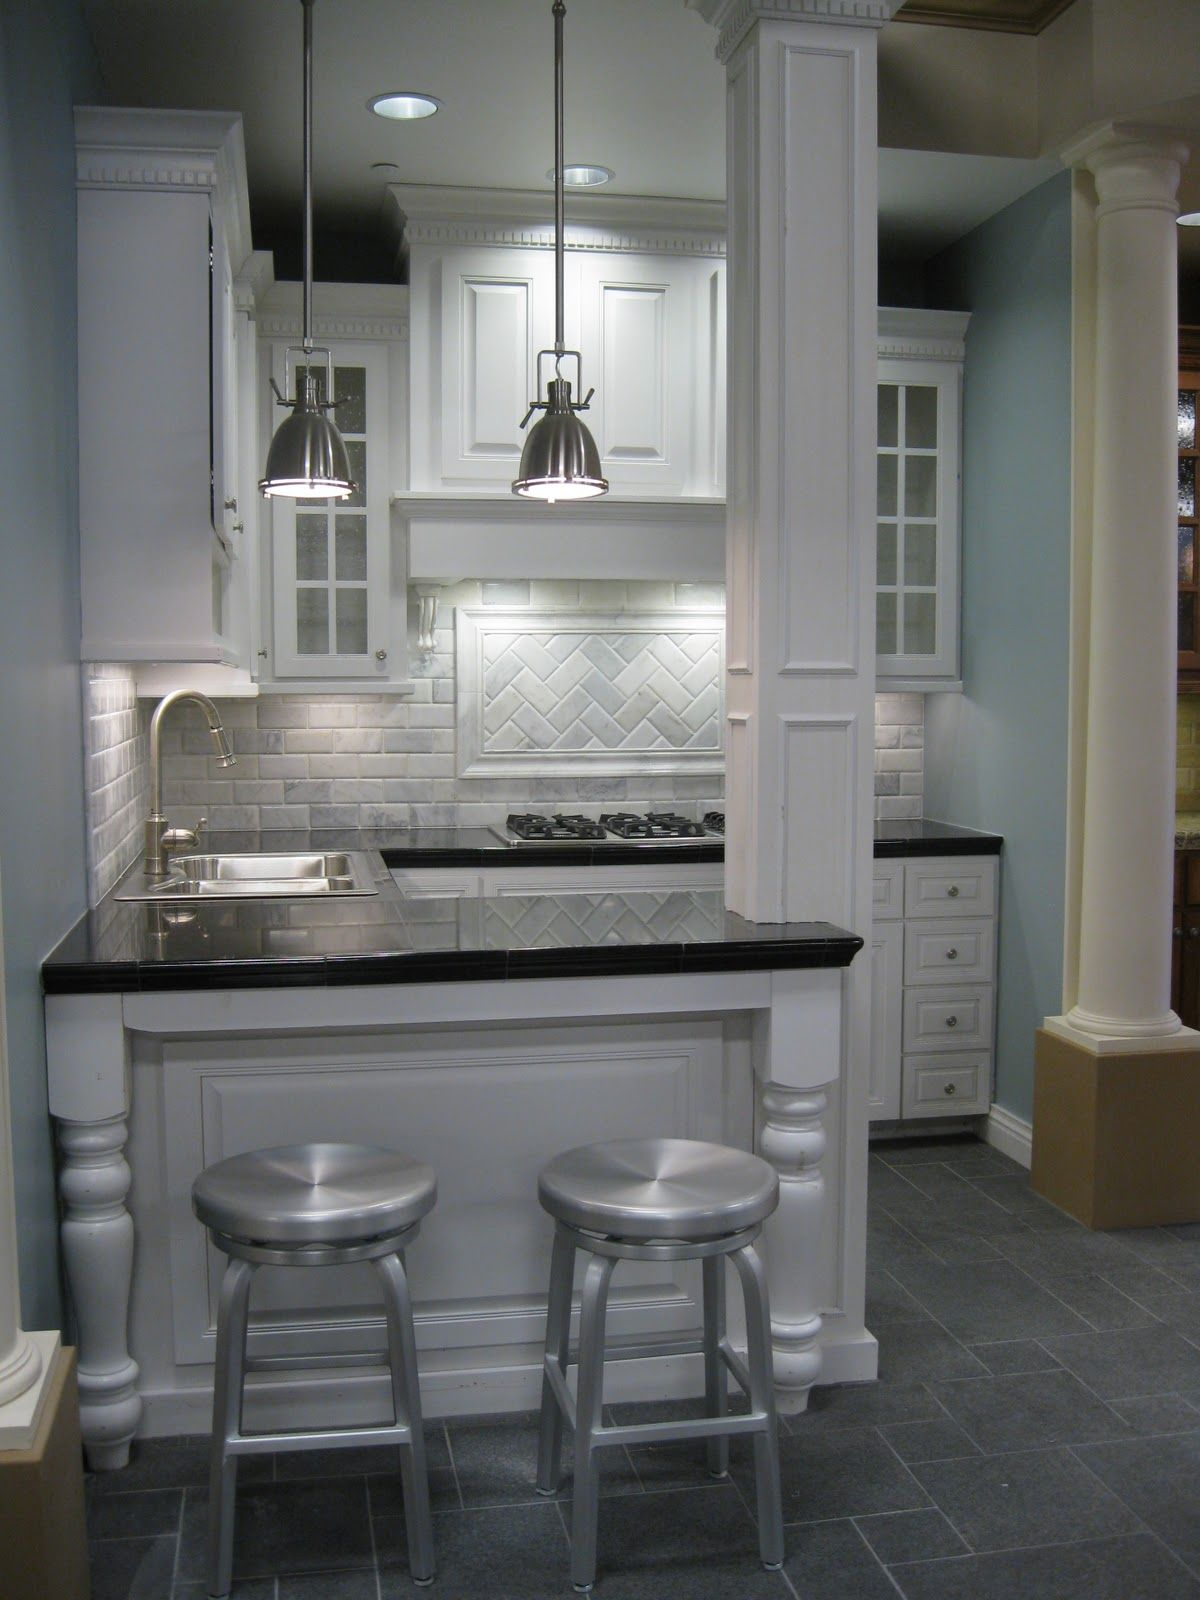 The tile shop design by kirsty 11 21 10 11 28 10 for Cocinas chiquitas